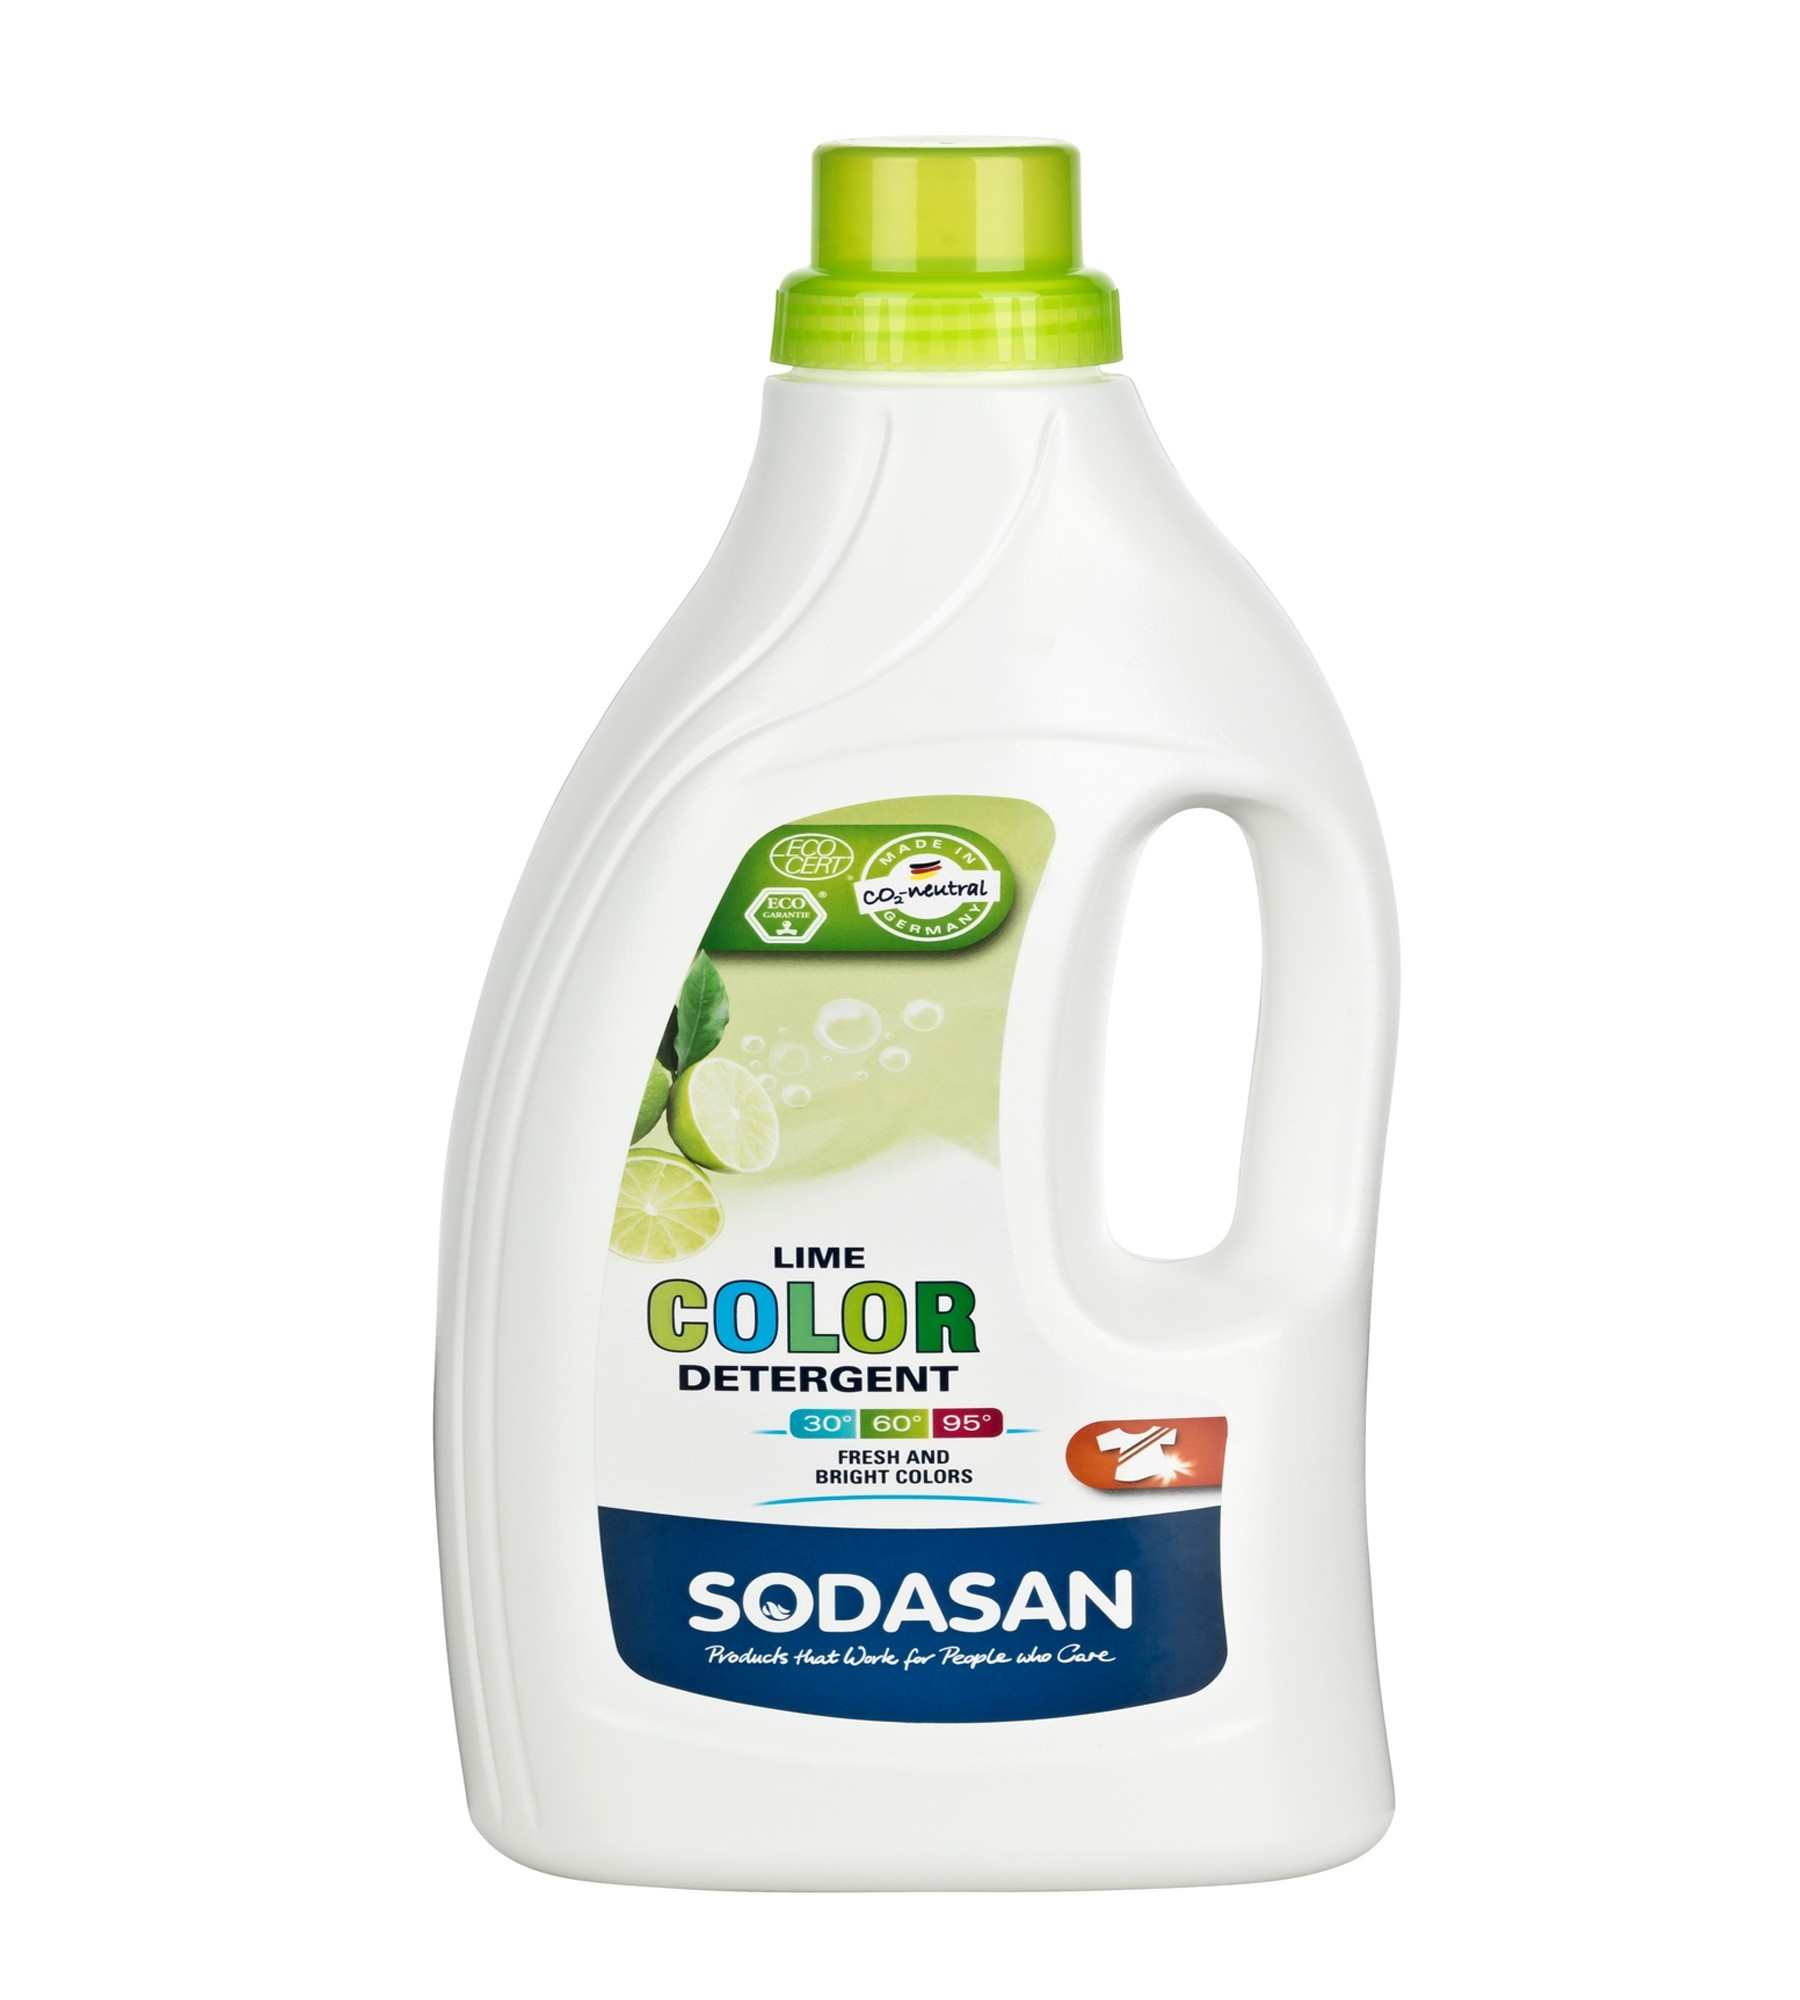 Sodasan Ecological Colour Detergent Lime